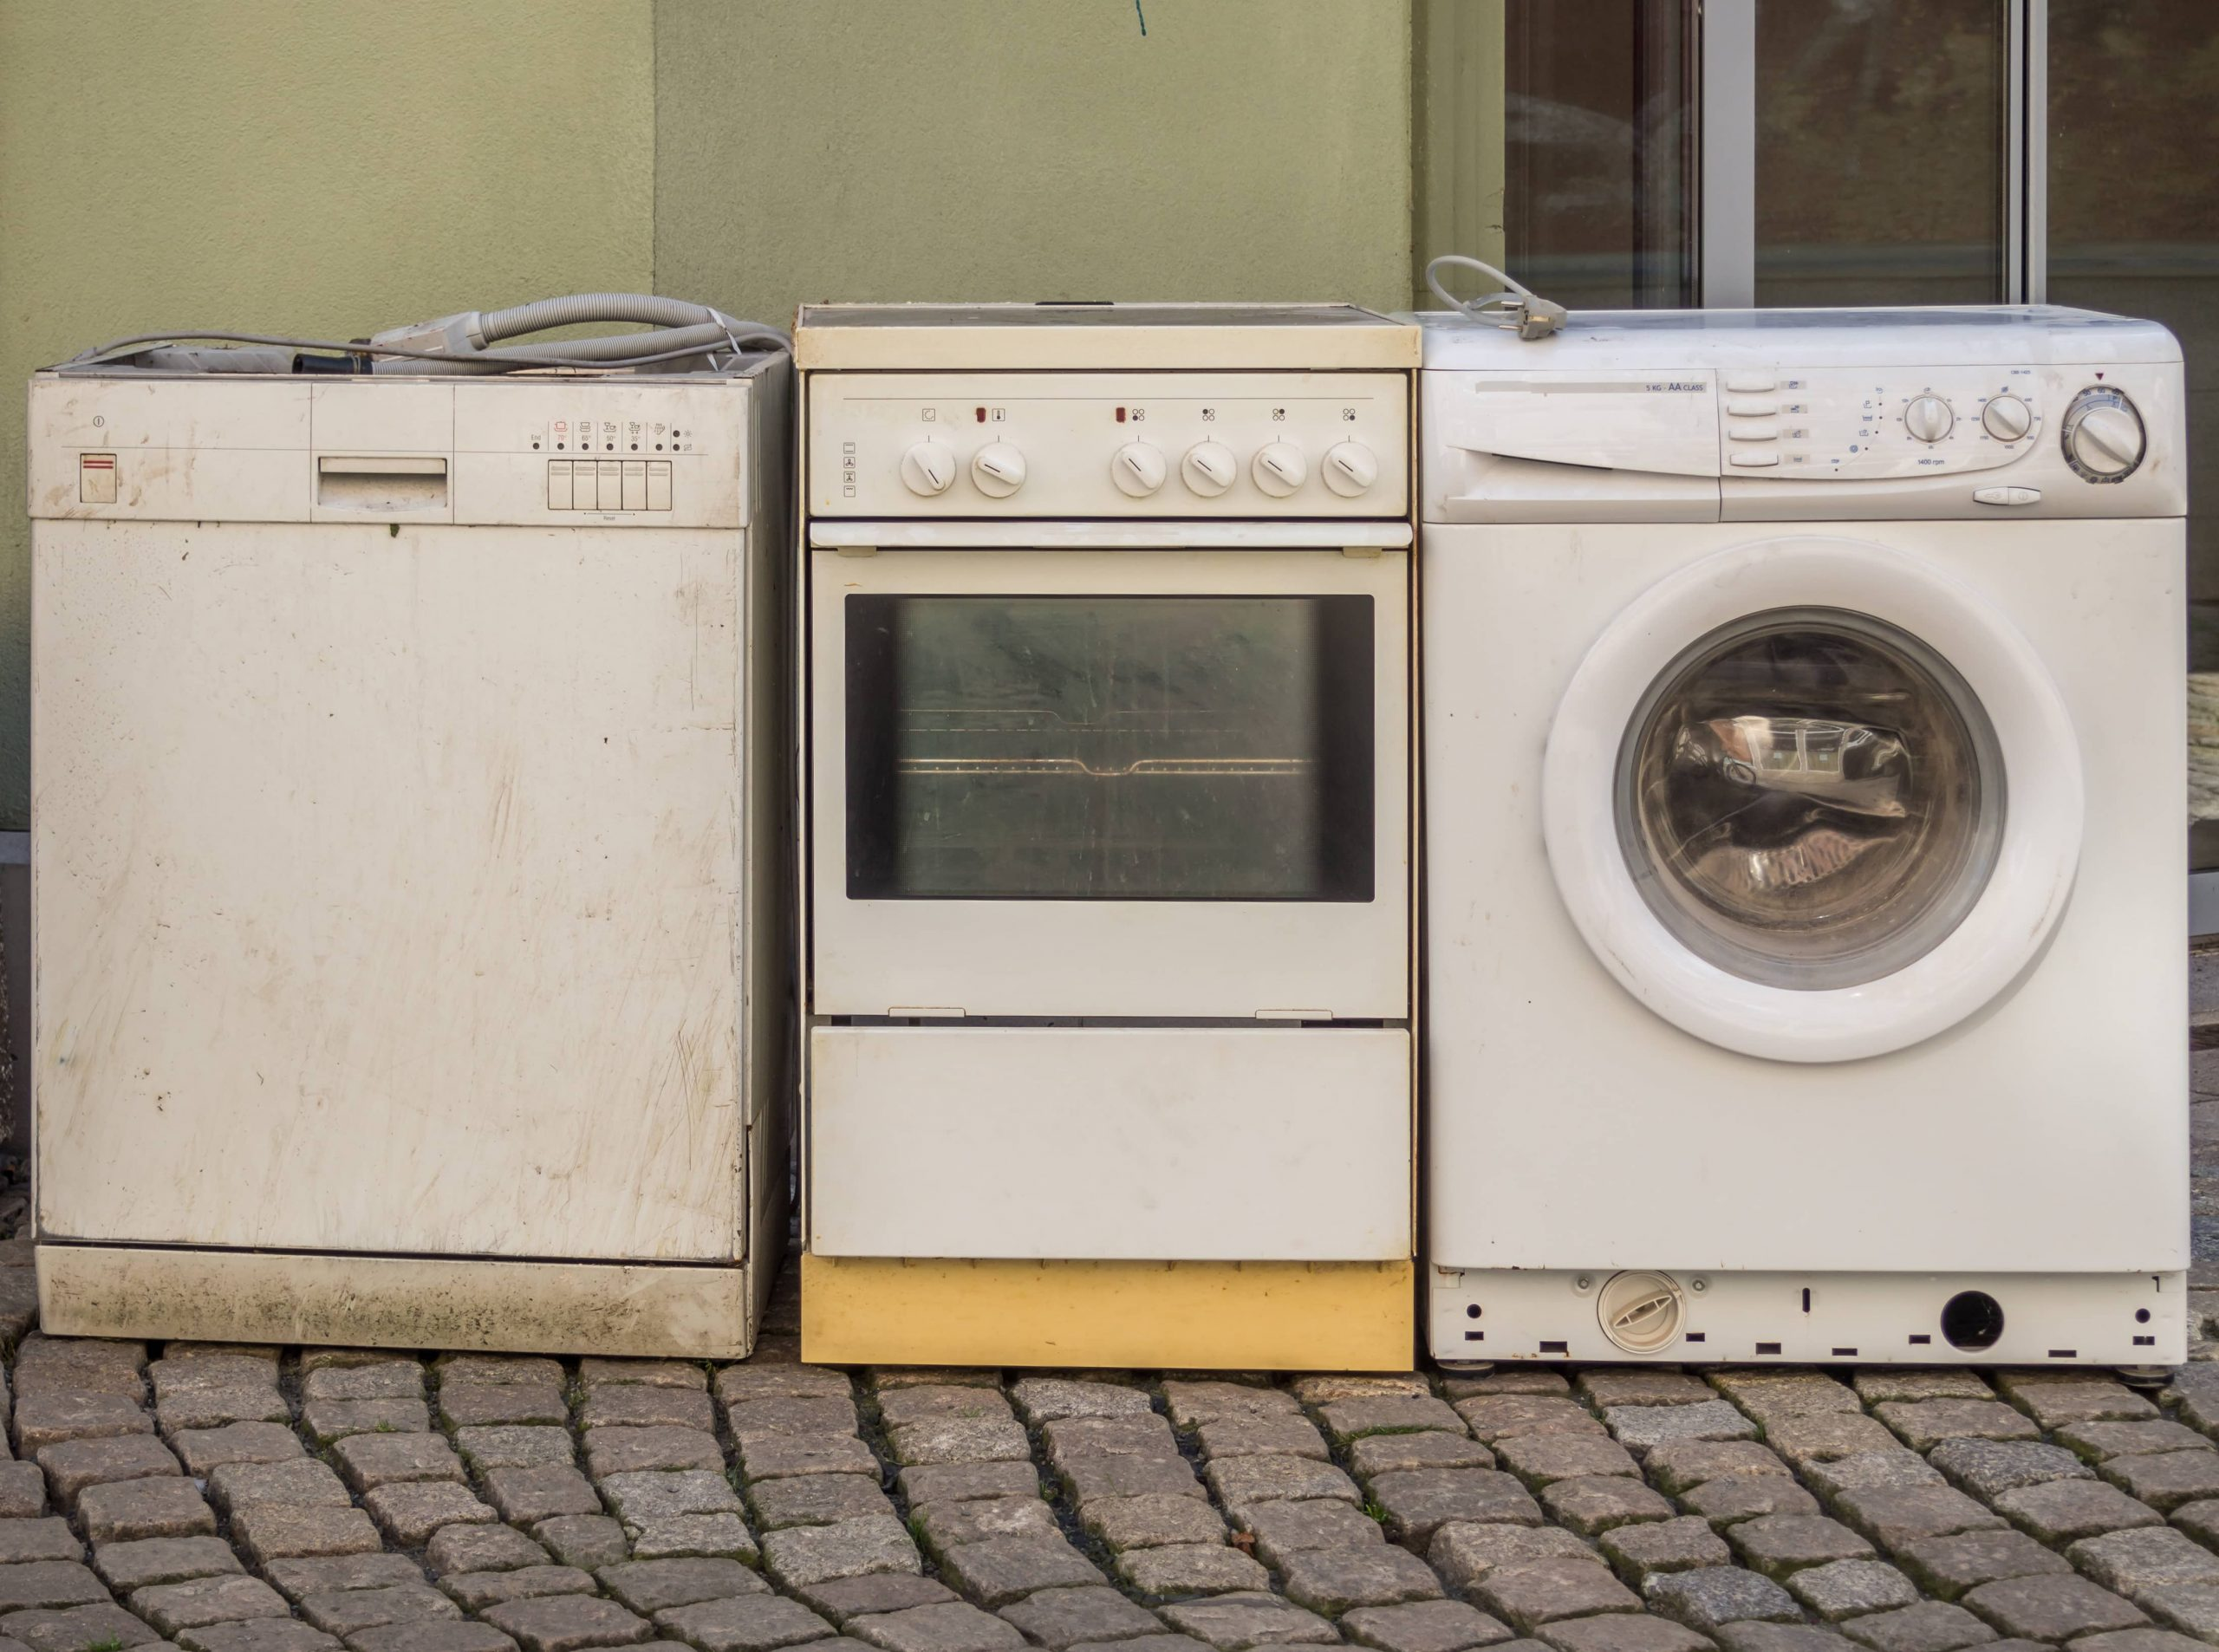 Ways To Deal With Unwanted Home Appliances And Equipment